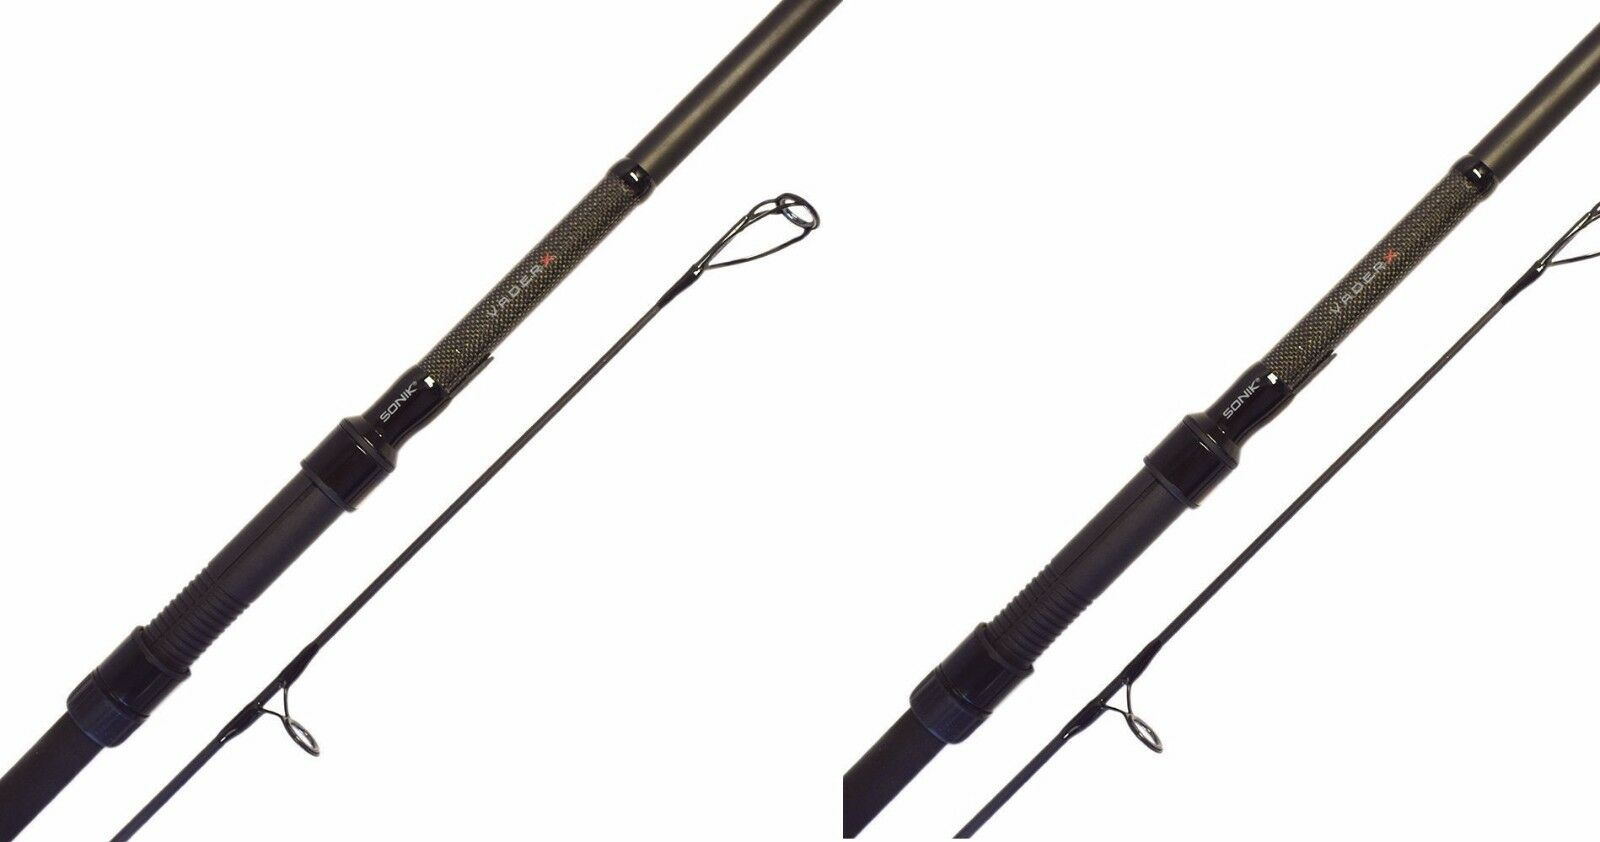 2 X Sonik Vader X Carp Rods 12ft 3.25lb Carp Fishing 50mm Butt Rings